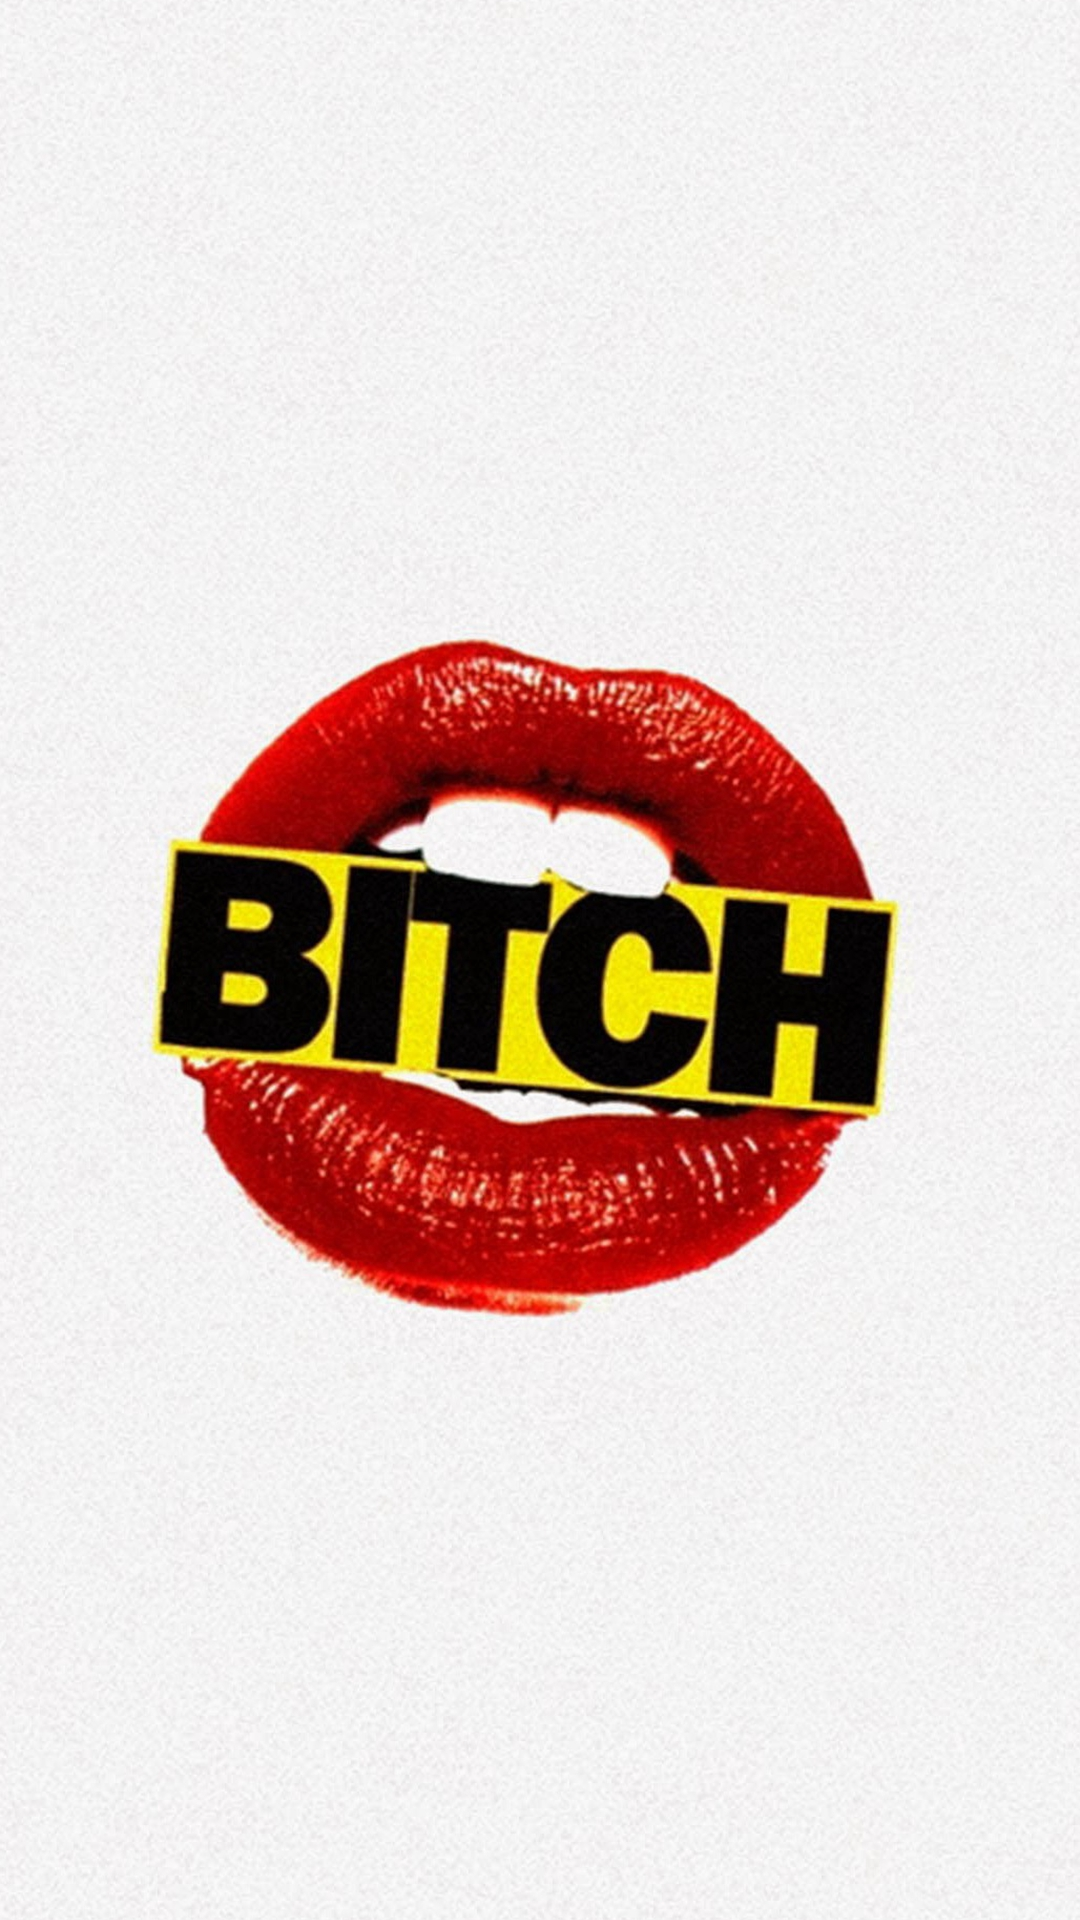 Bitch-Lips-Sign-wallpaper-wp3003720